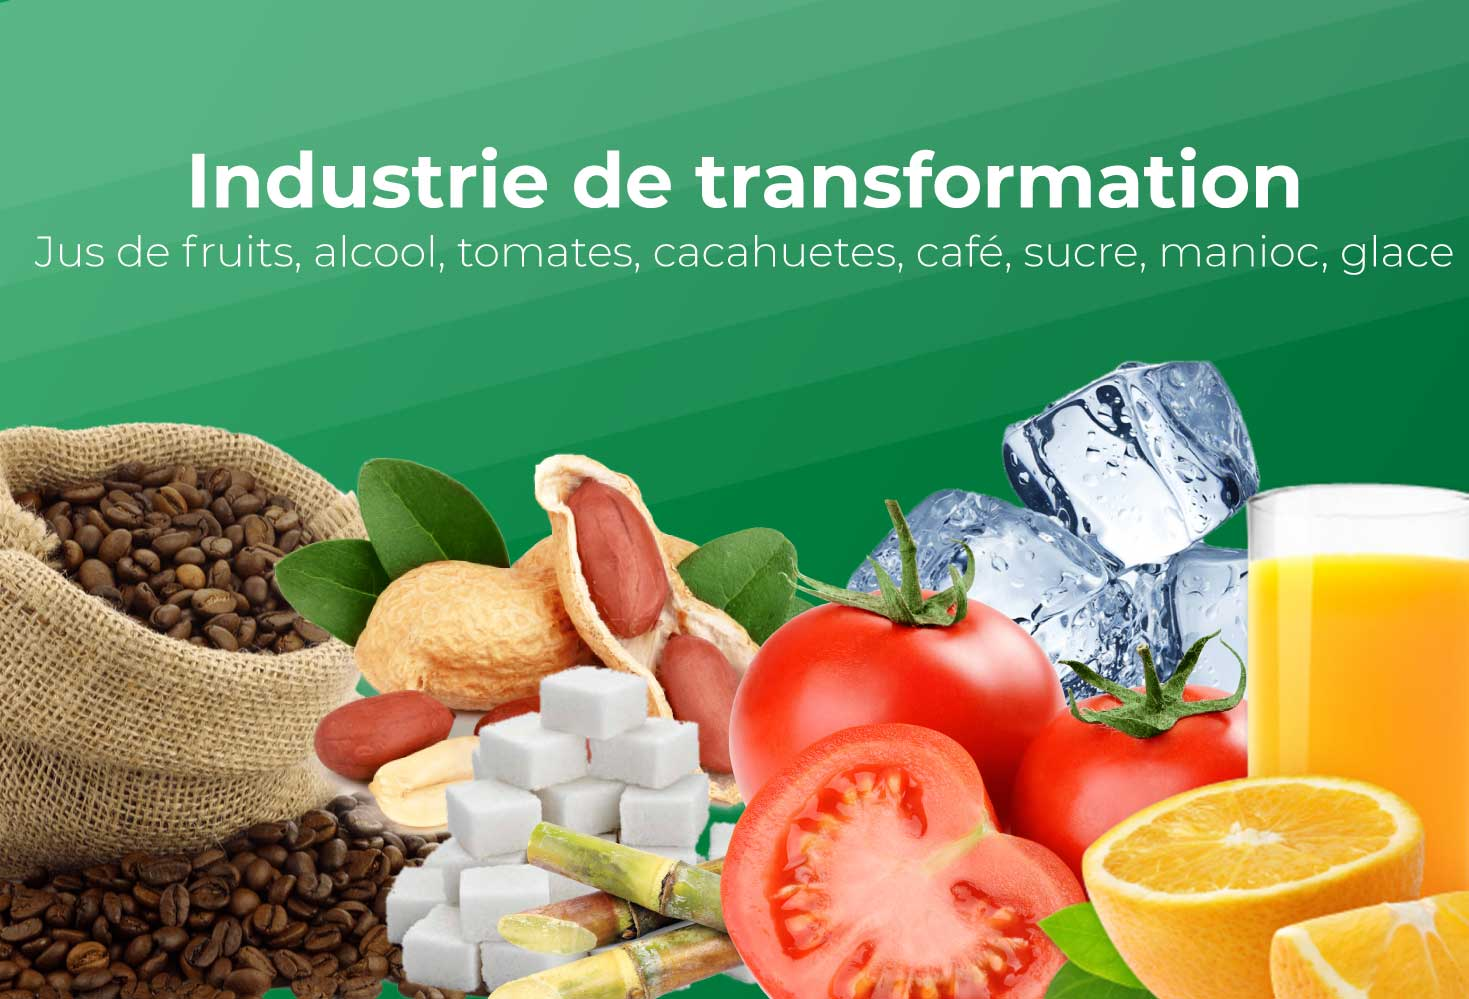 Industries de transformation